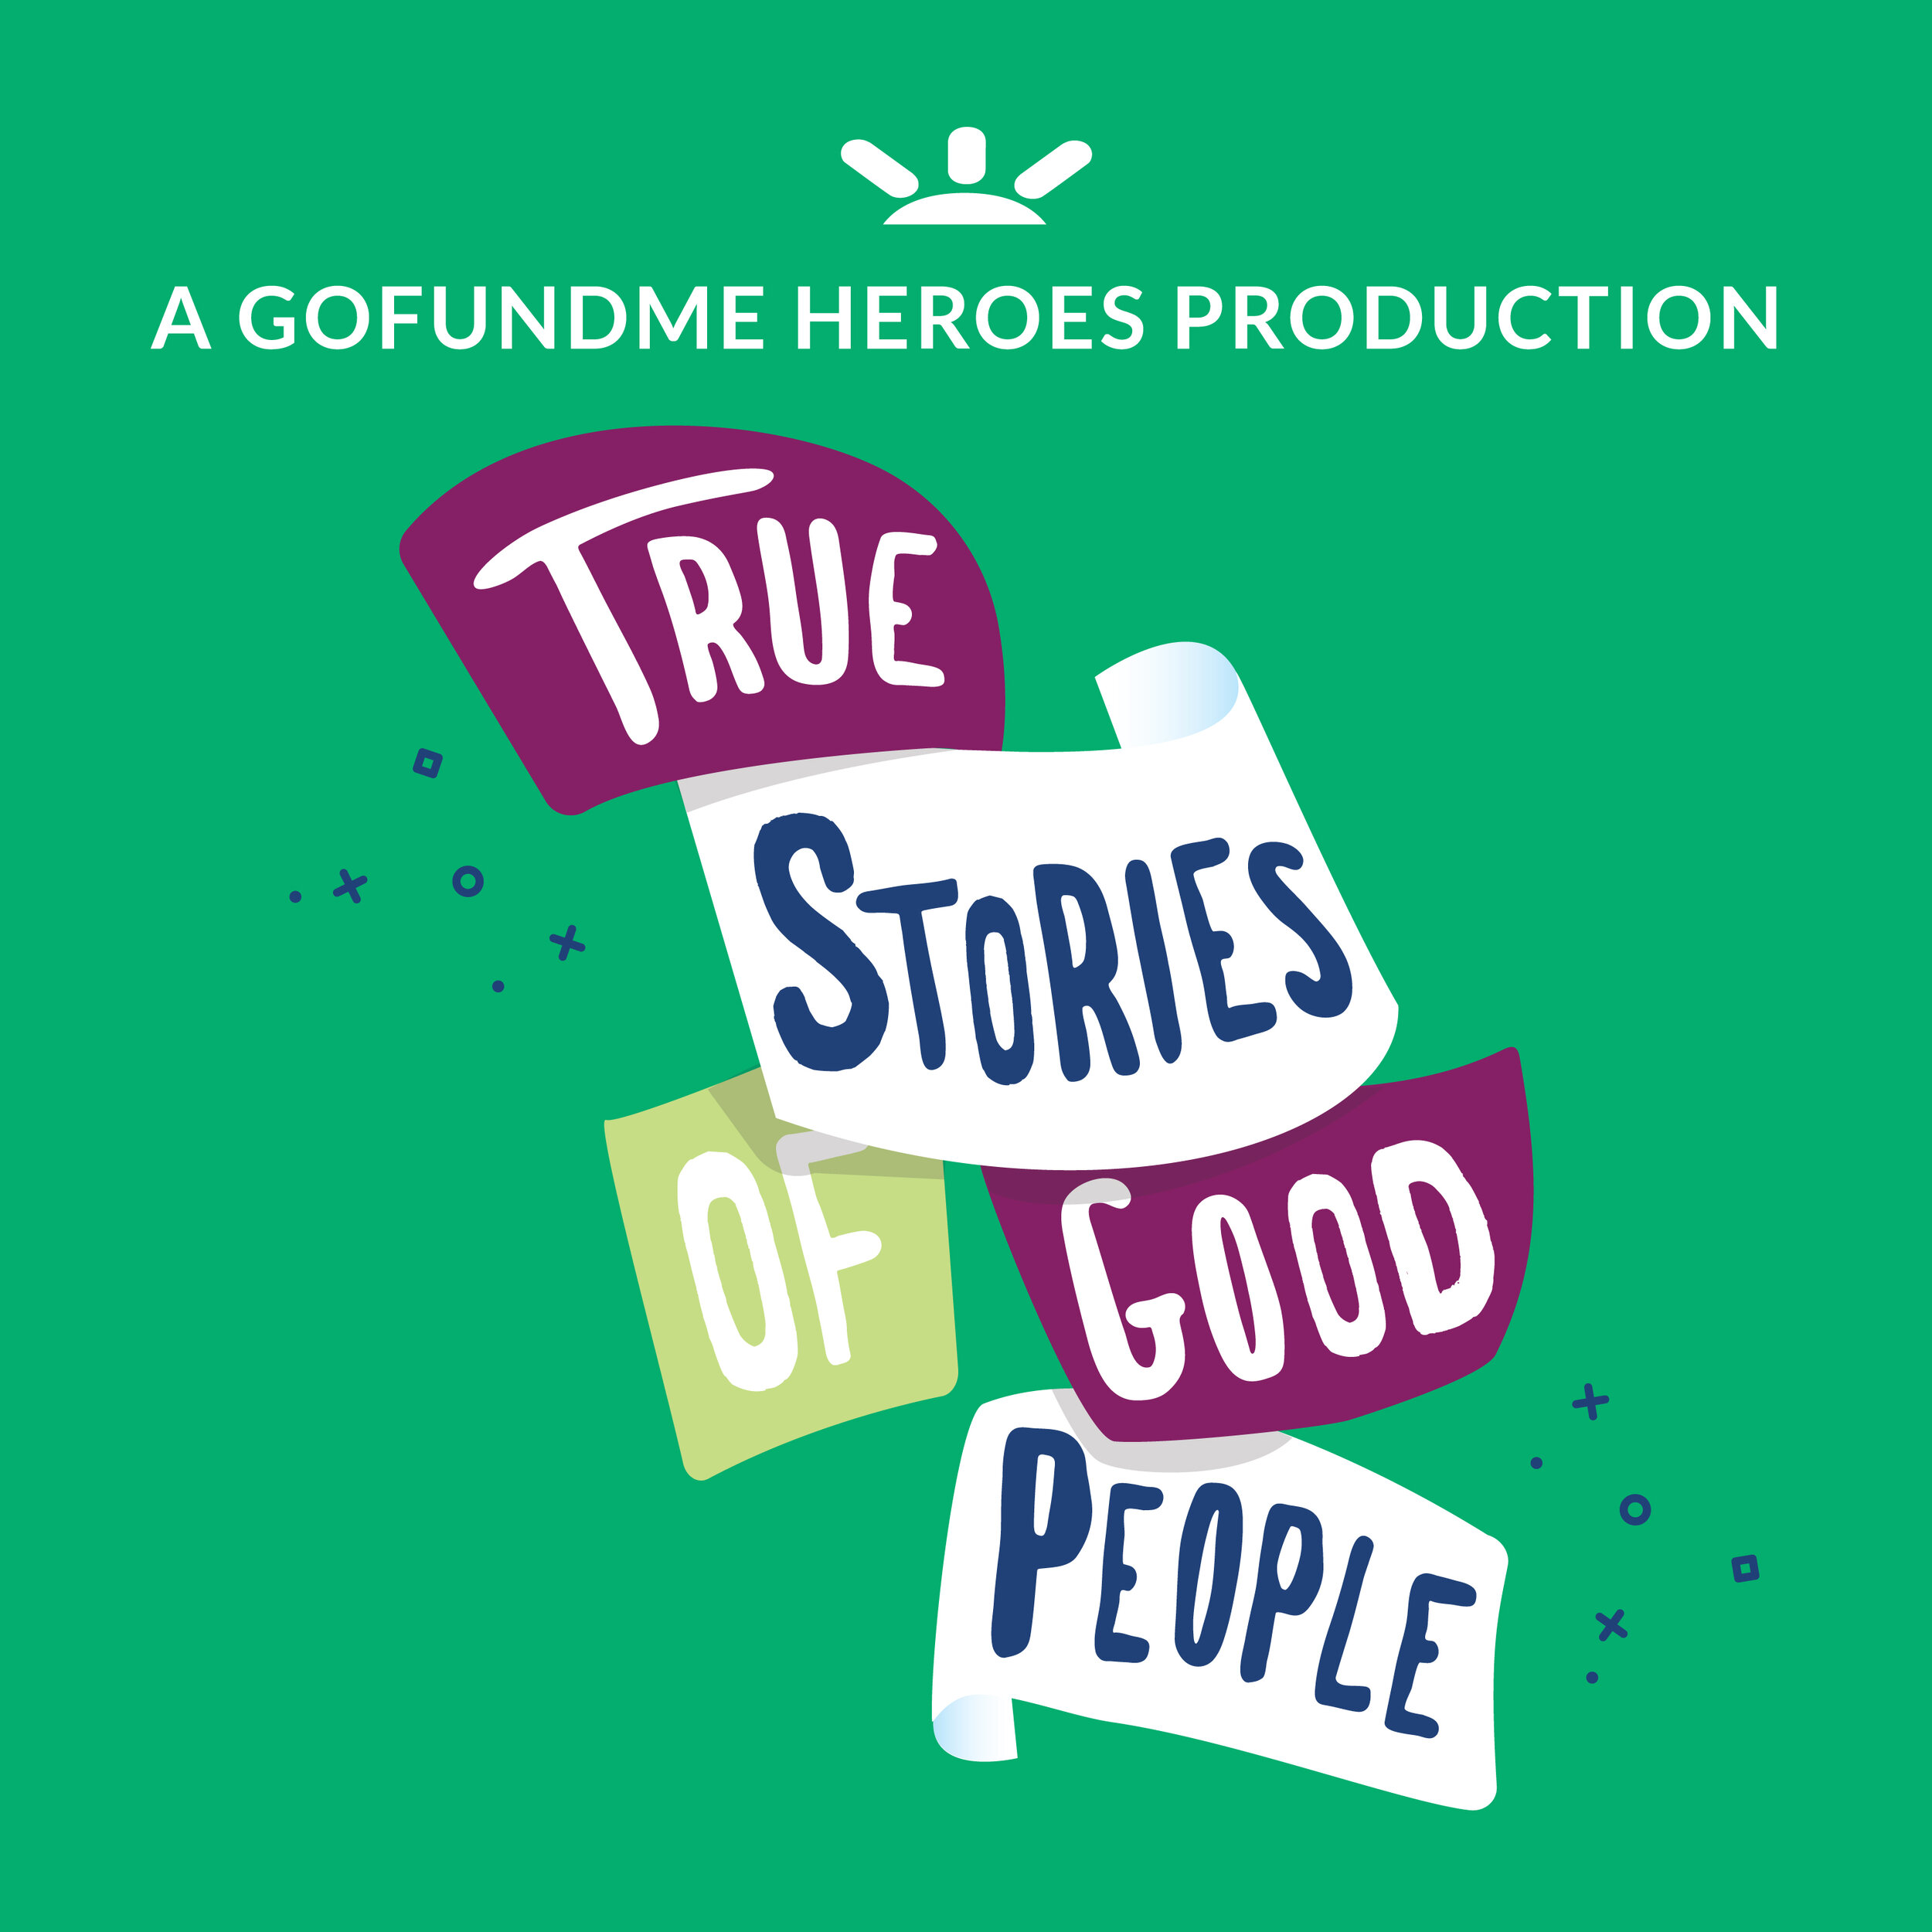 True Stories of Good People is a podcast about people who are making a difference in other people's lives, or have had their lives changed by someone kind.